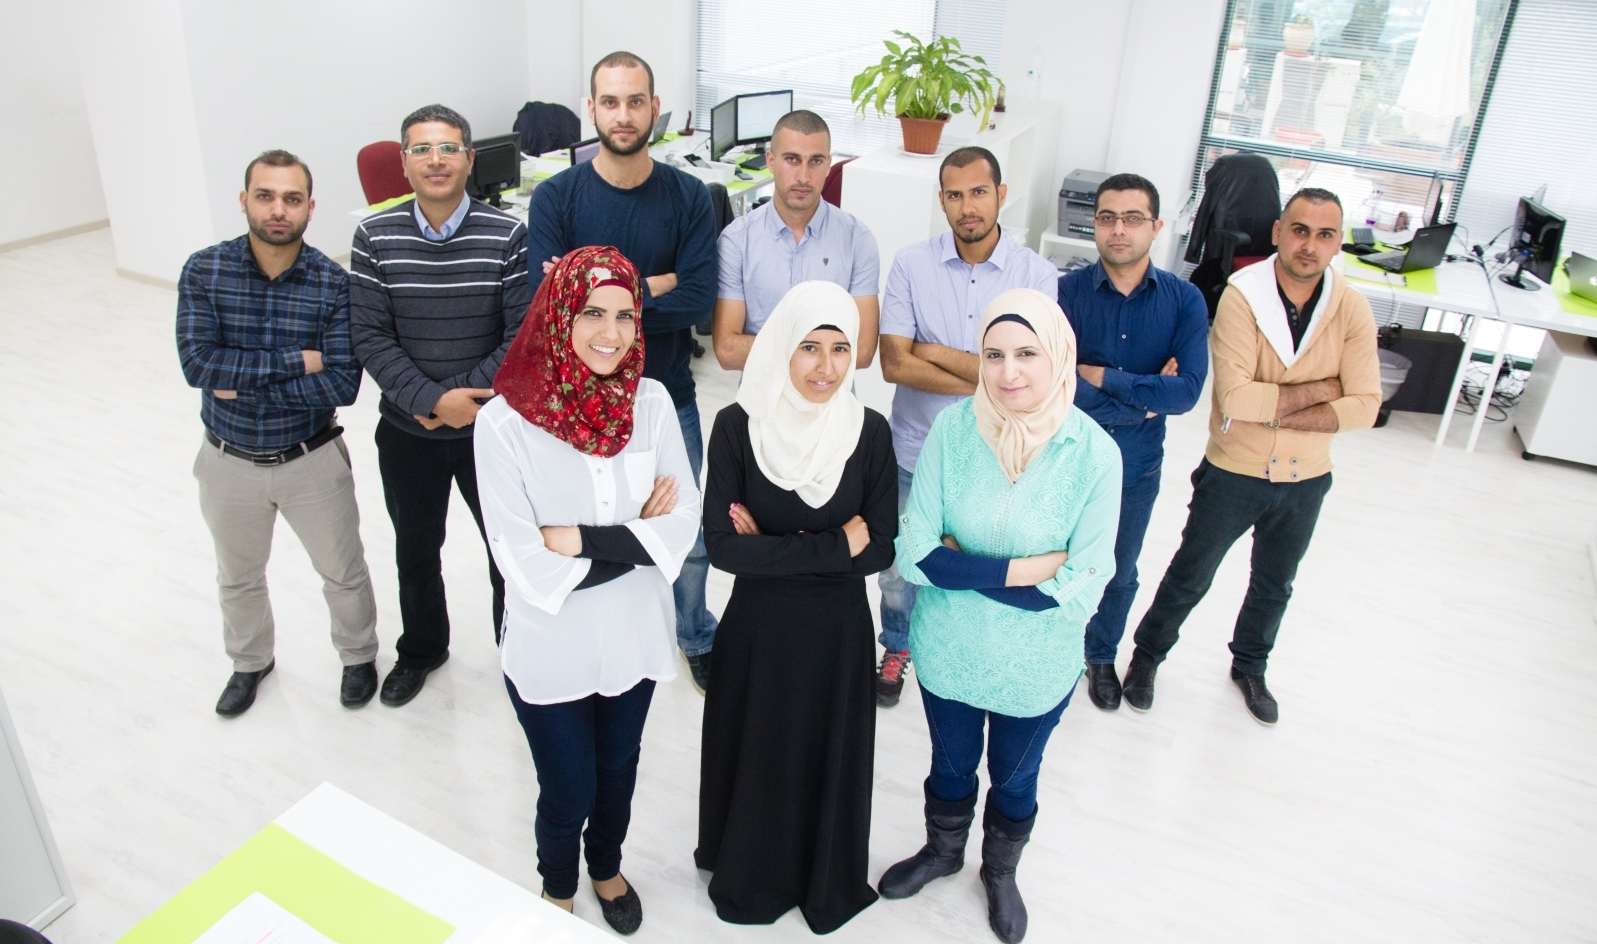 The SadelTech team. Photo by Anas Abu-Daabis